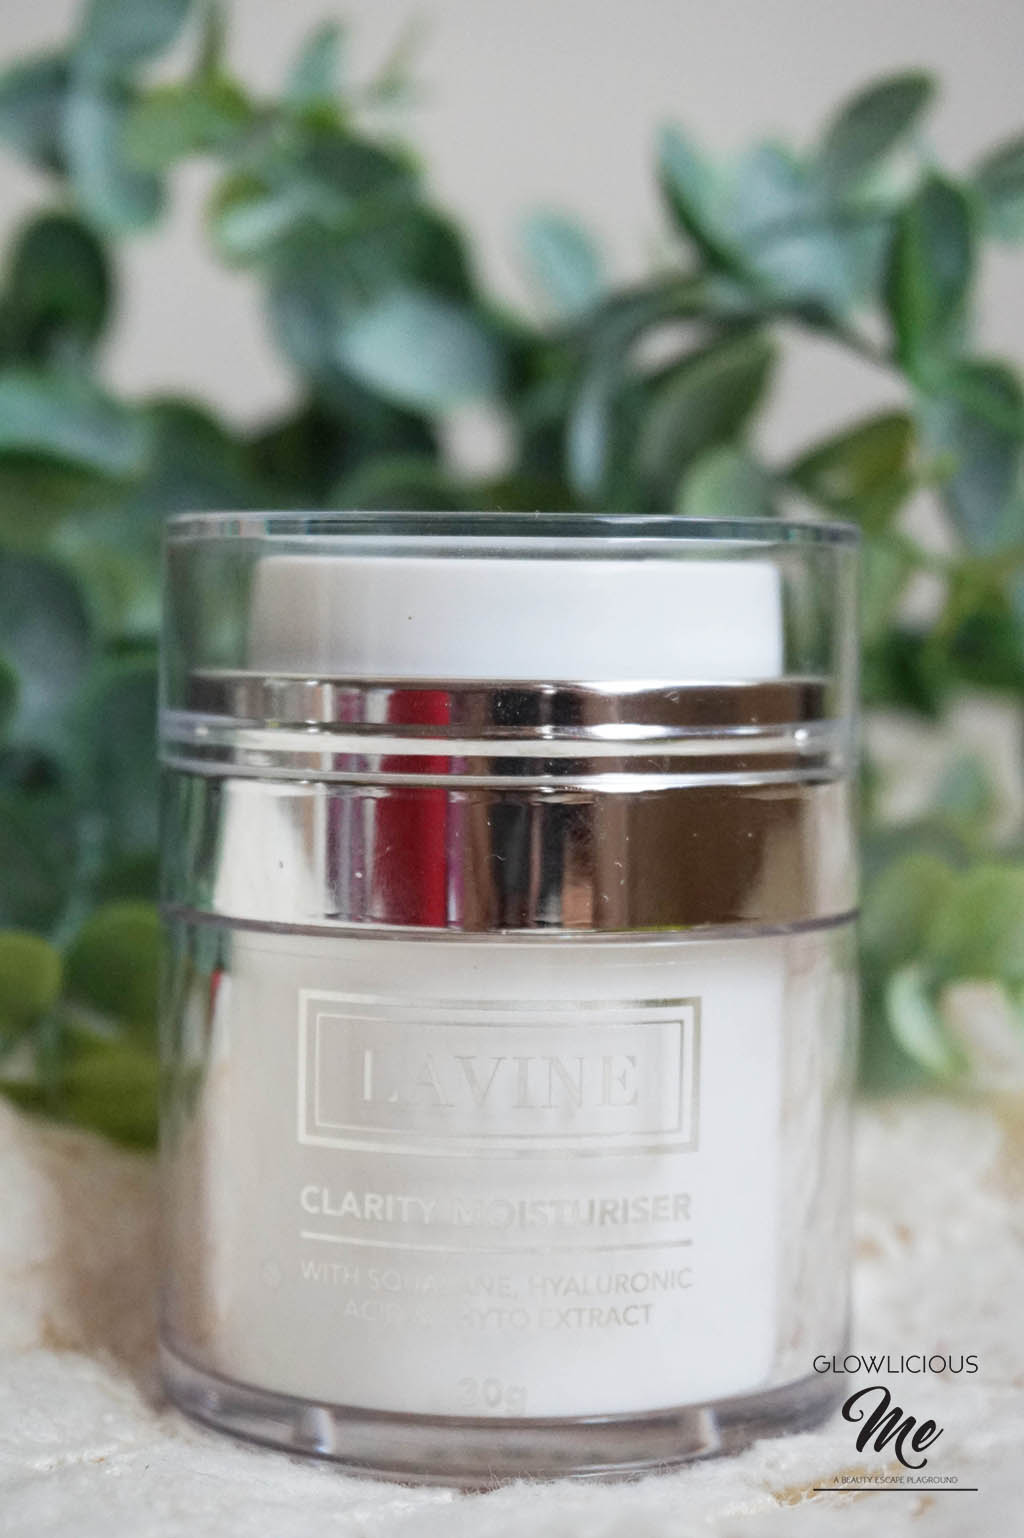 REVIEW LAVINE CLARITY MOISTURISER 30ml